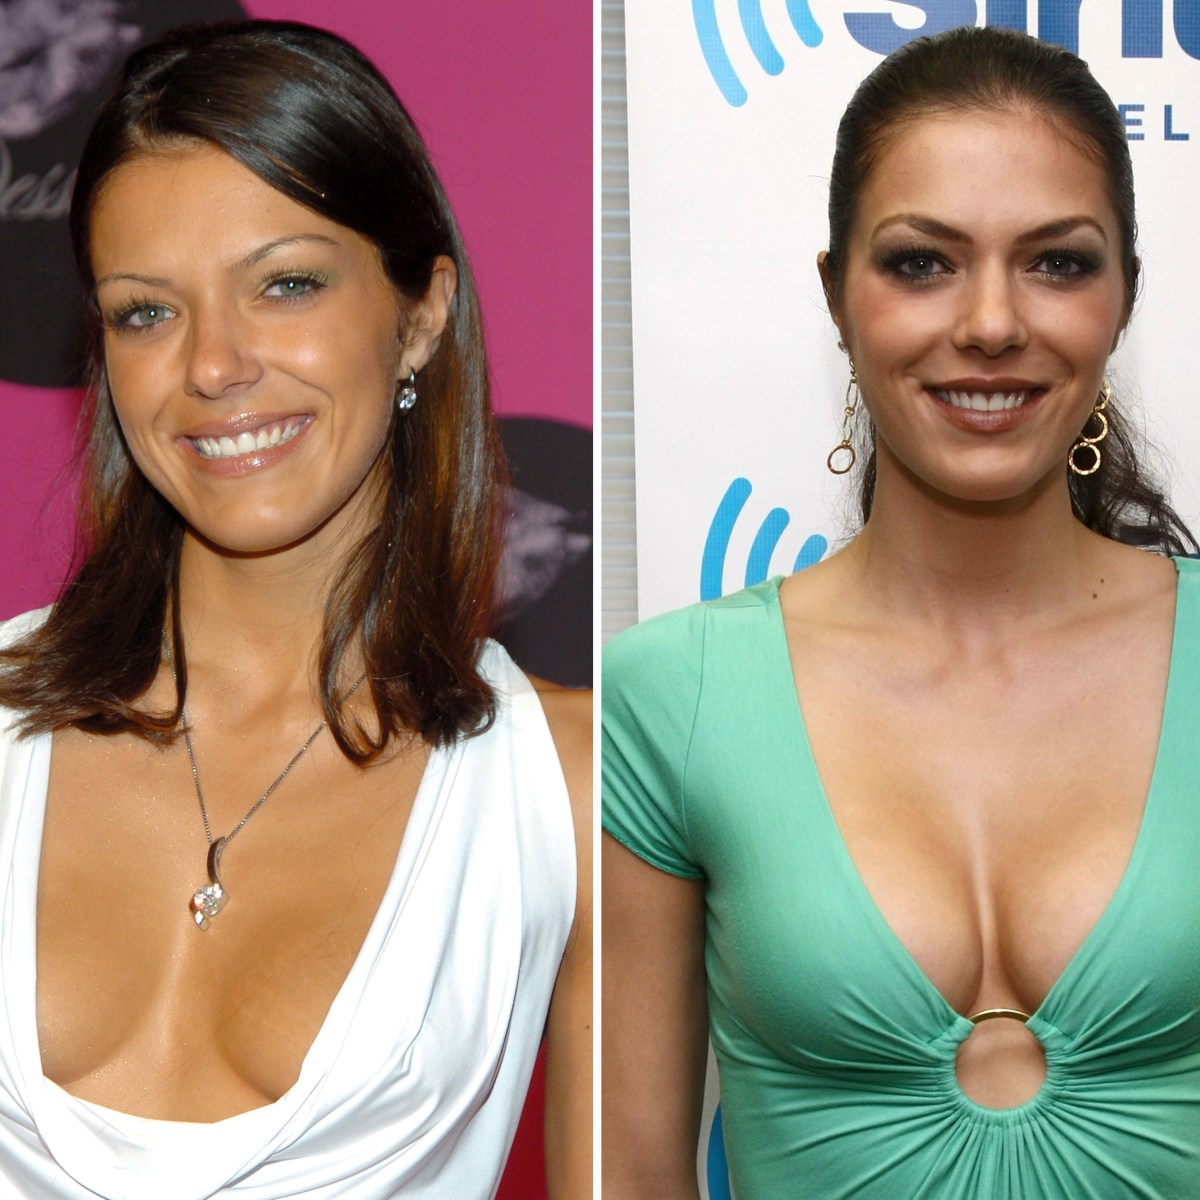 adrianne curry fakes